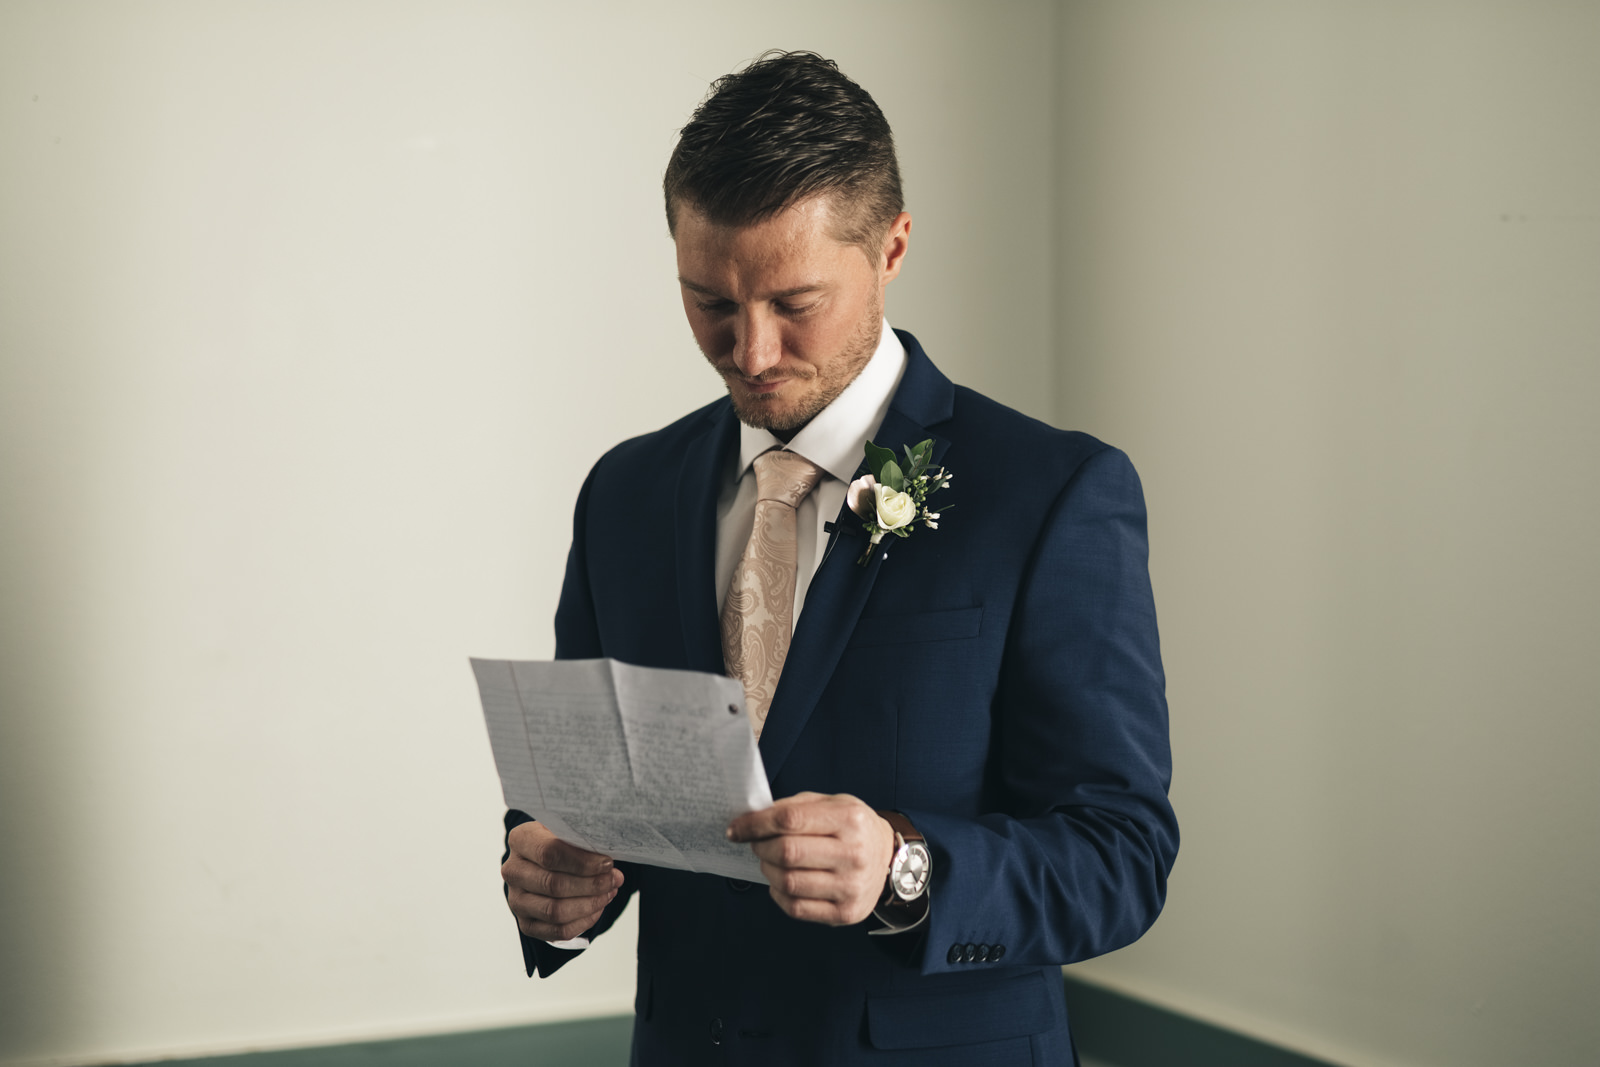 Groom reading letter from his bride before ceremony.